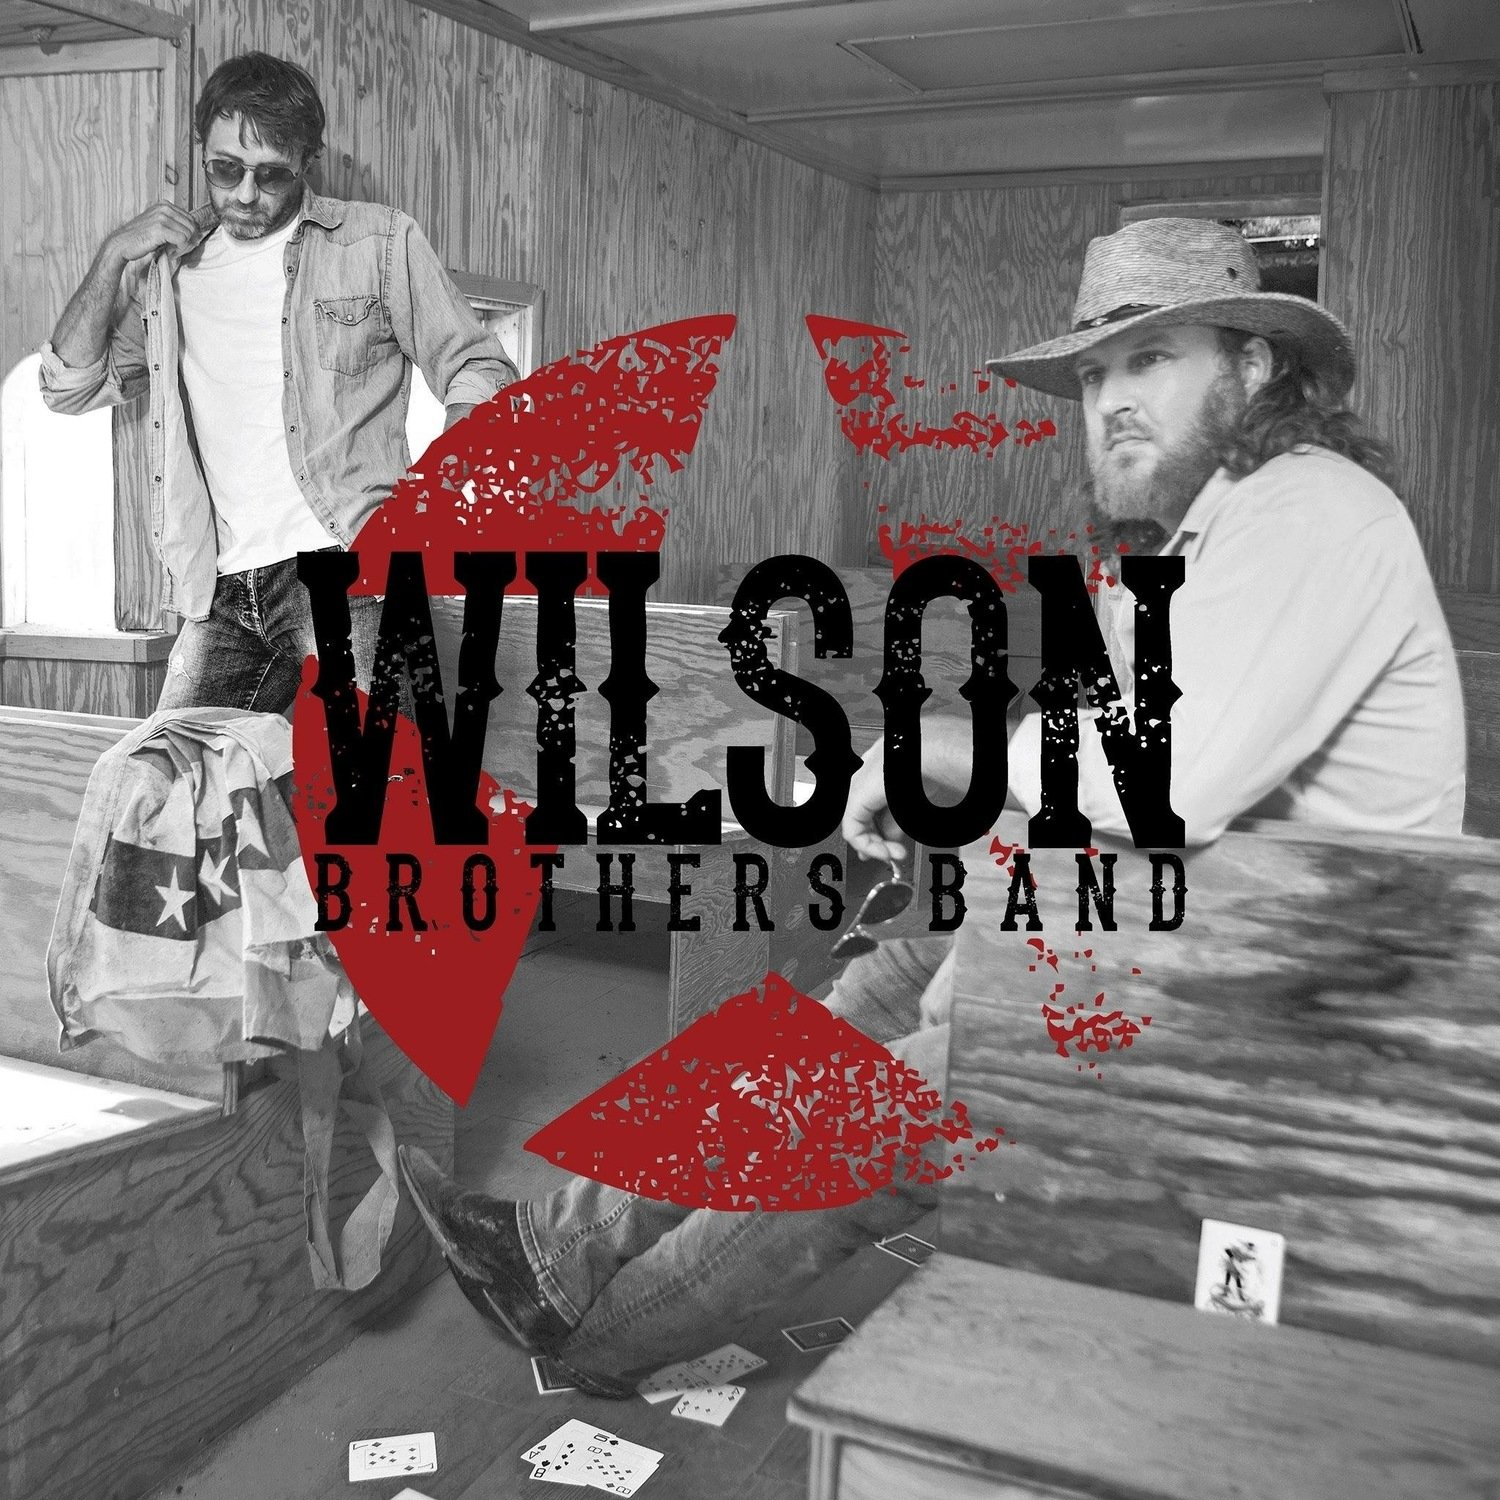 CD - Wilson Brothers Band (autographed copy from the band)